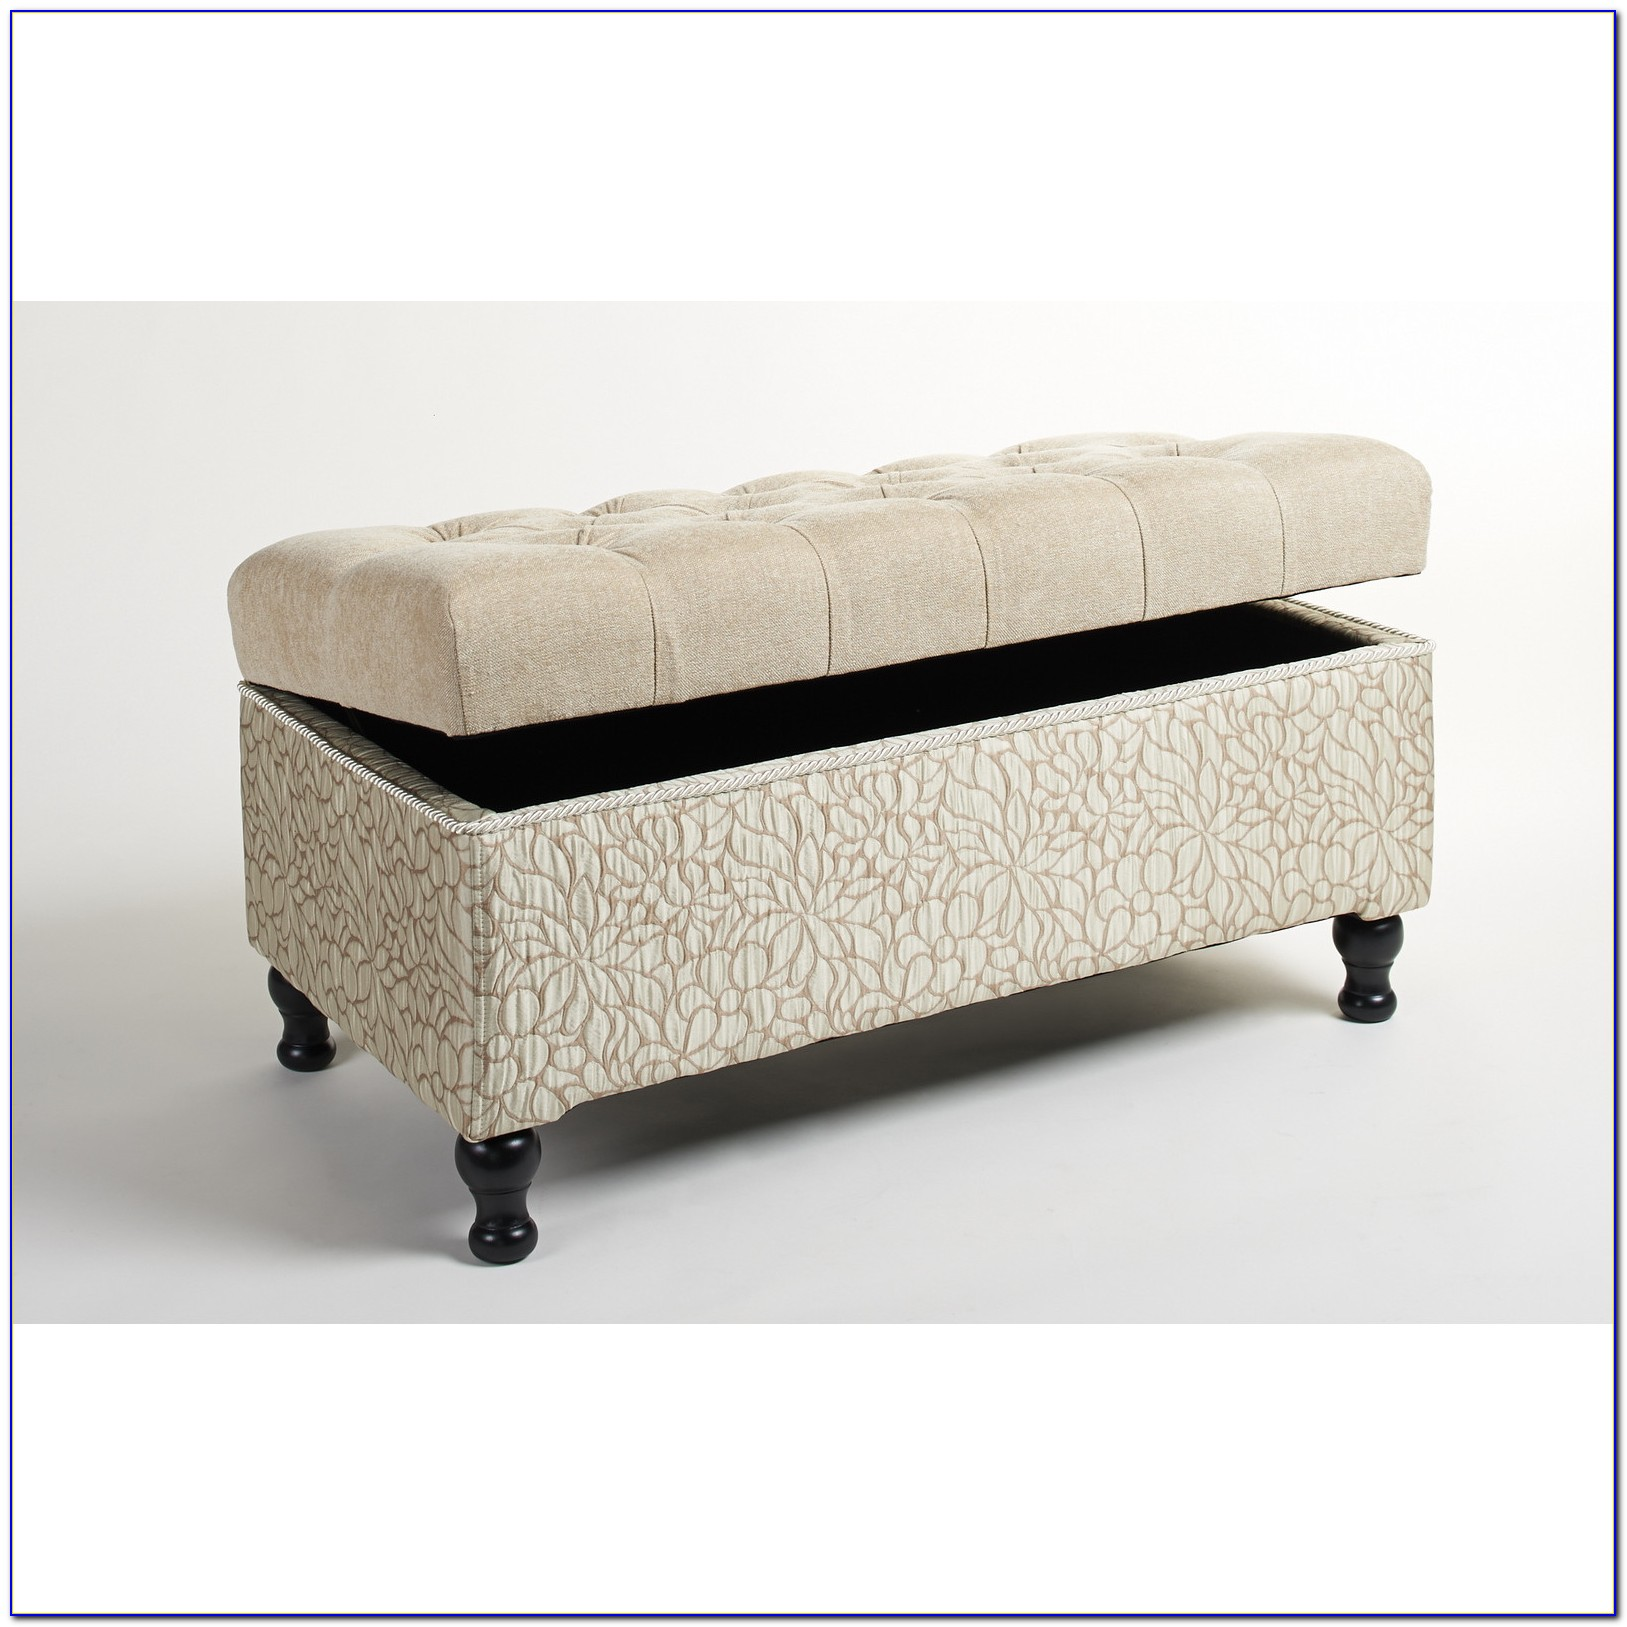 Evening Mist Upholstered Storage Bedroom Bench By Pri